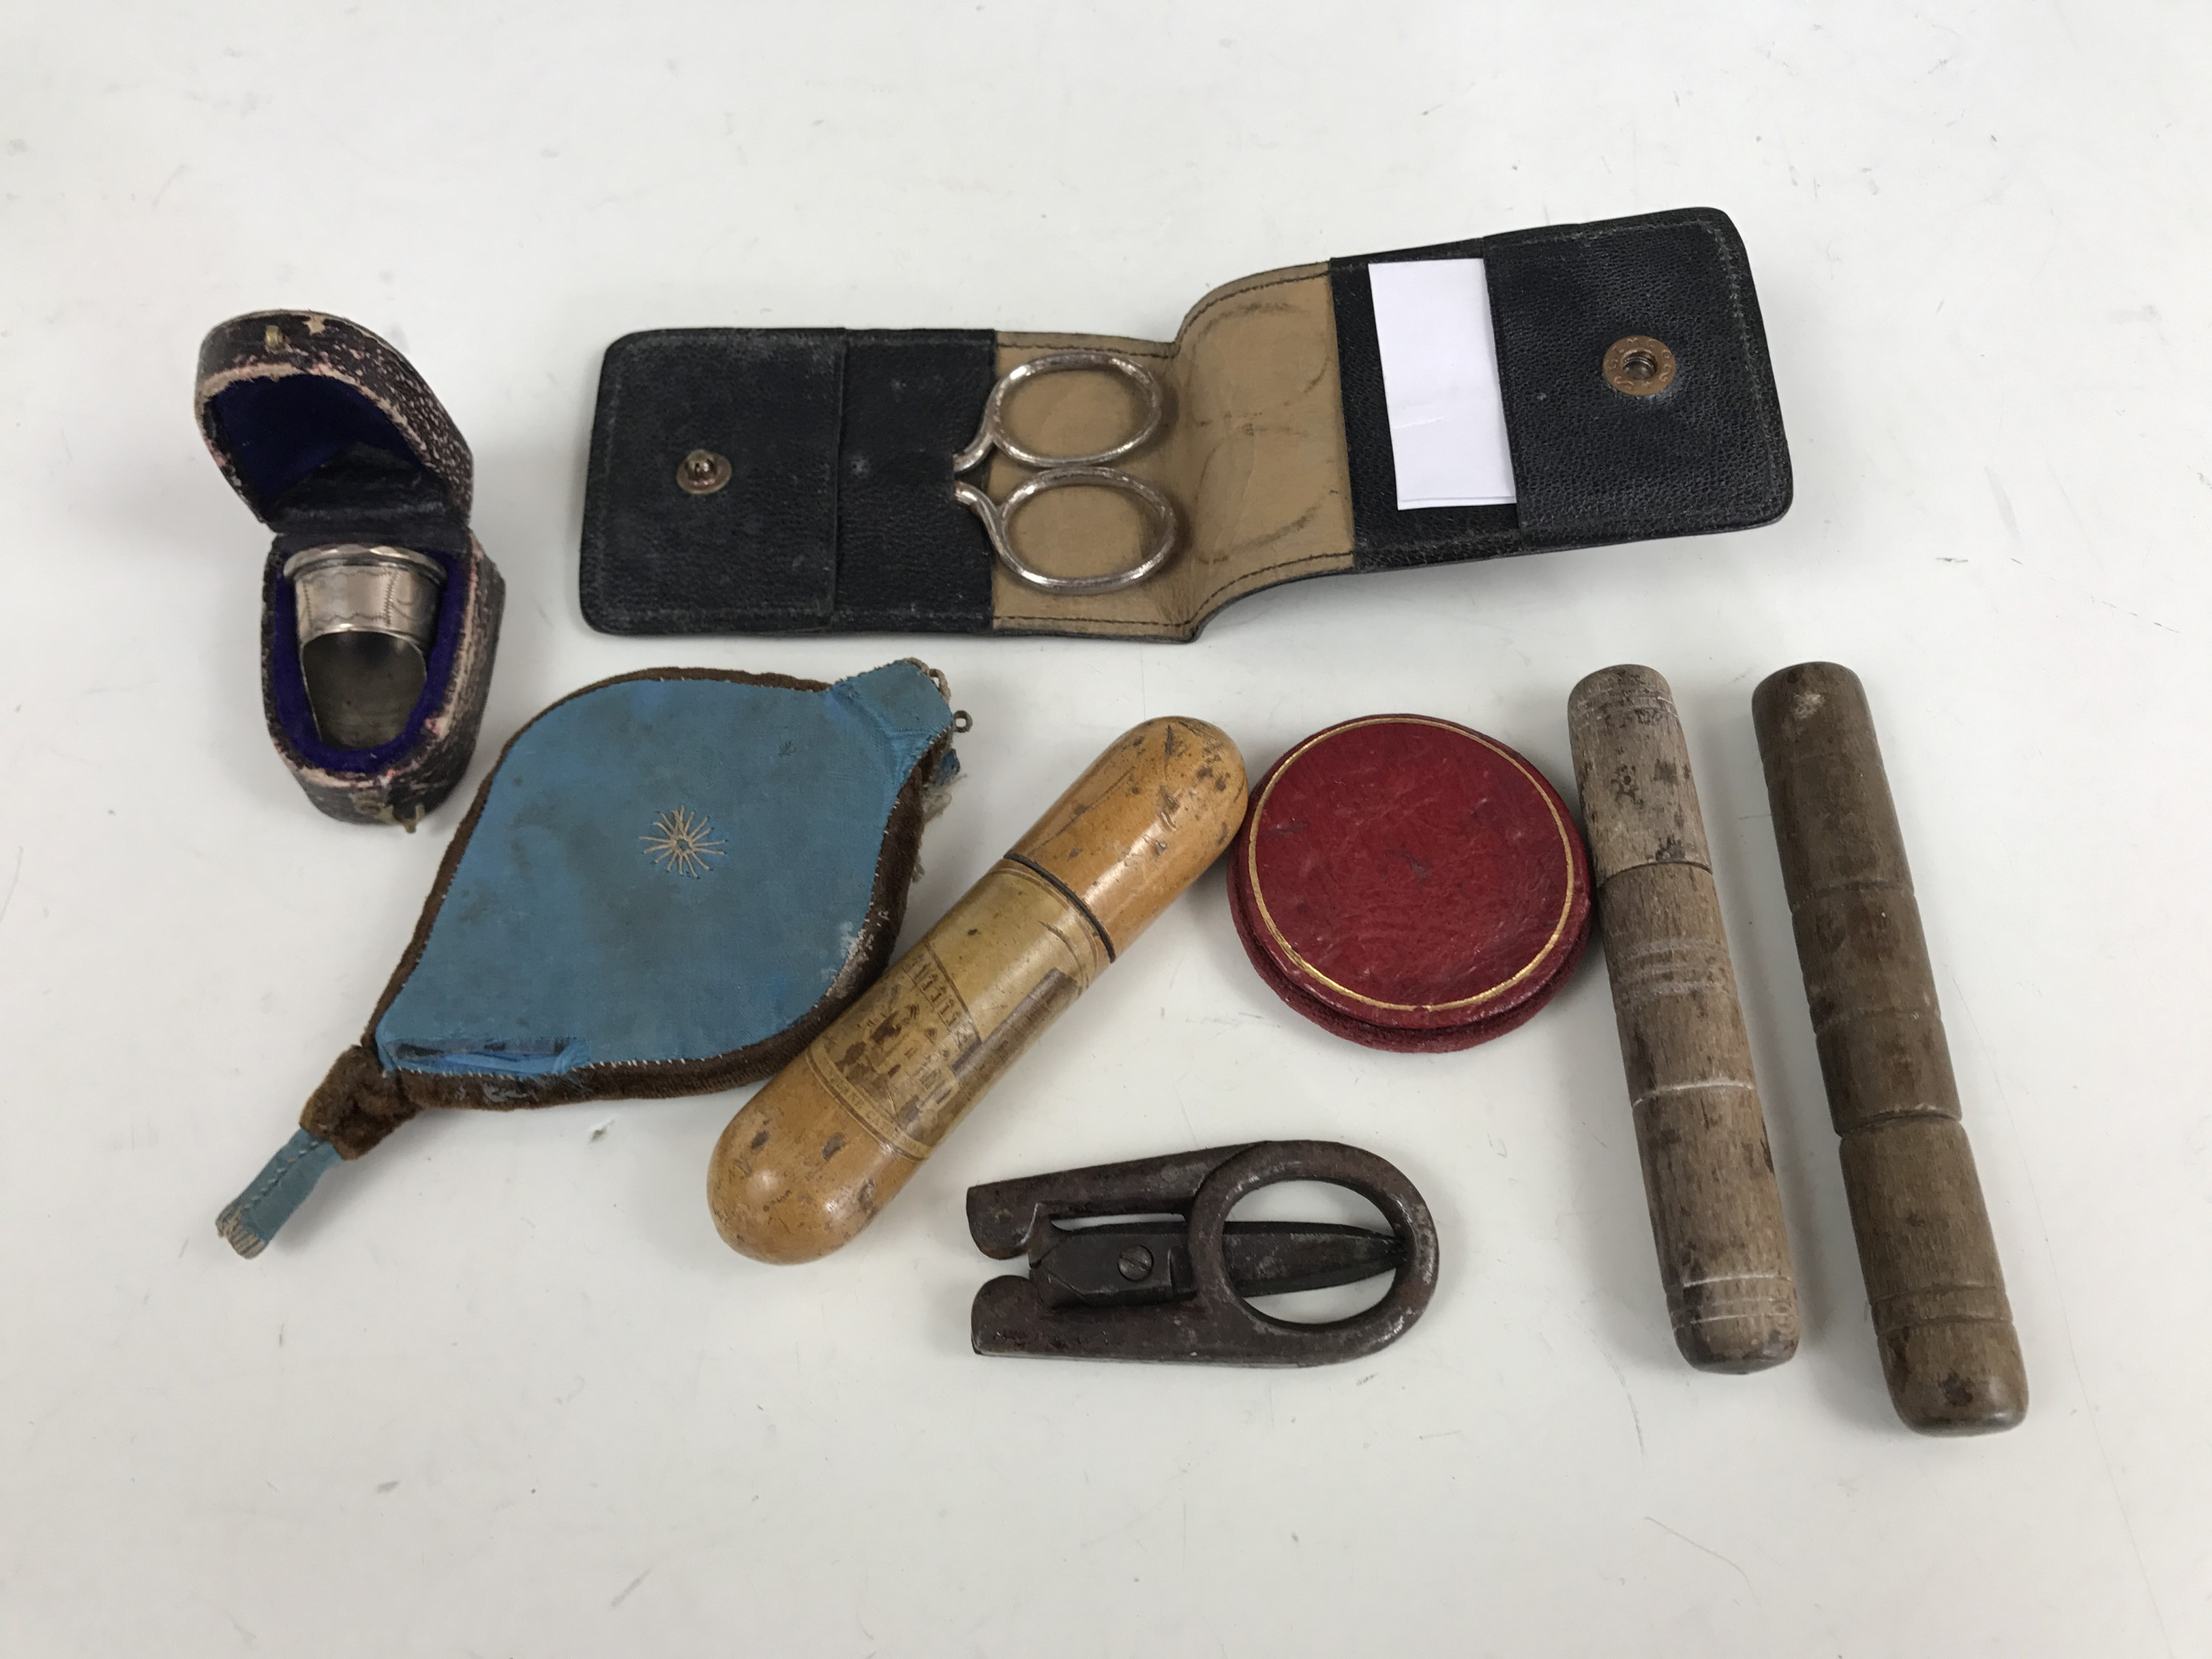 Lot 7 - 19th Century sewing instruments including a Mauchline Ware needle case bearing a view of Dunblane